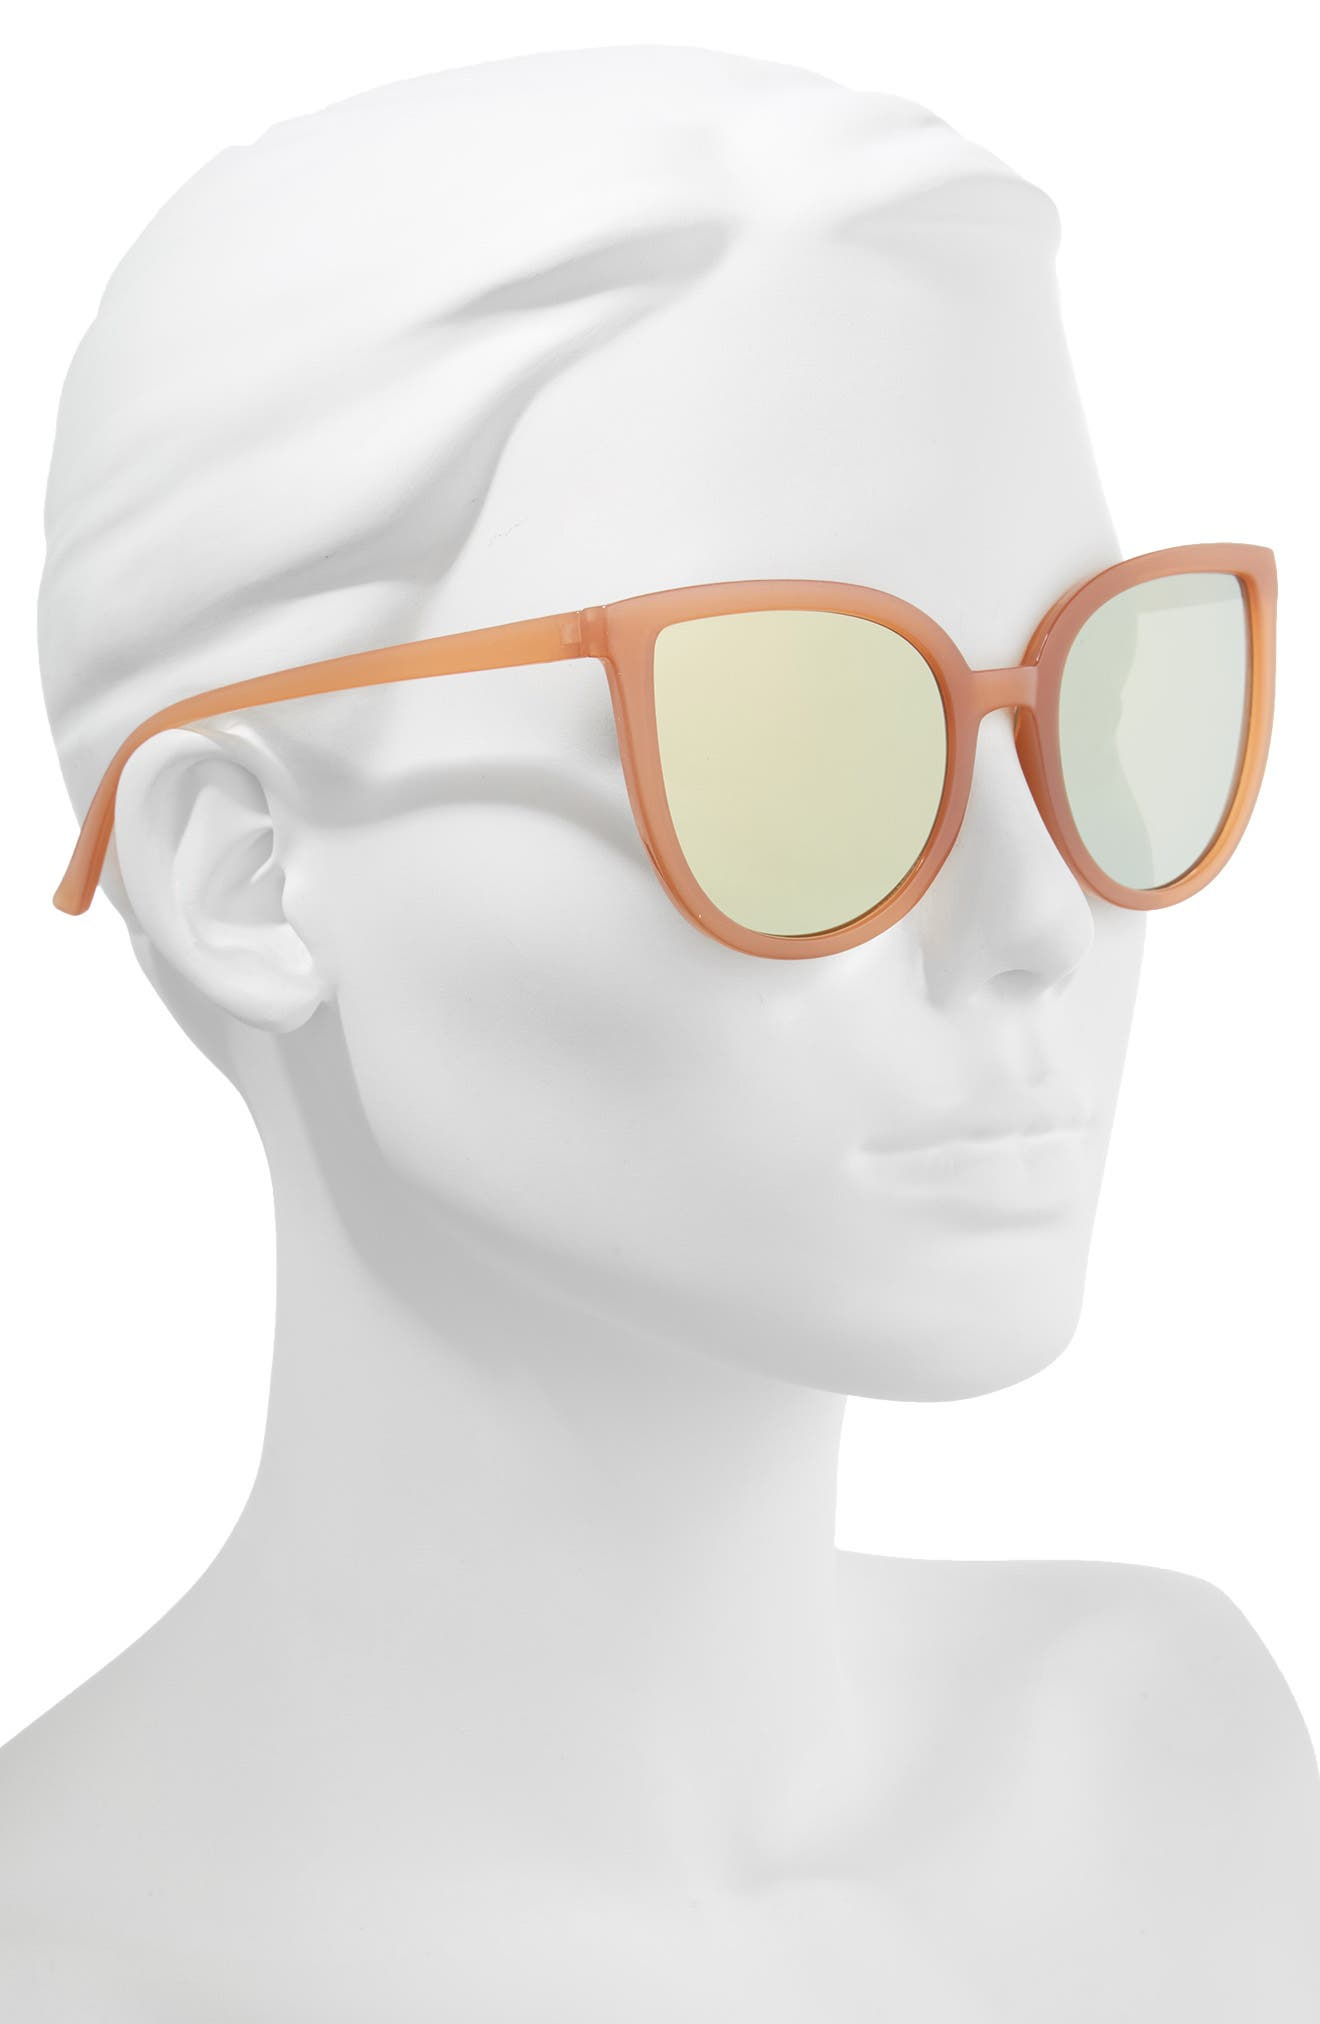 Thin Cat Eye Sunglasses,                             Alternate thumbnail 2, color,                             MILKY PEACH/ GOLD